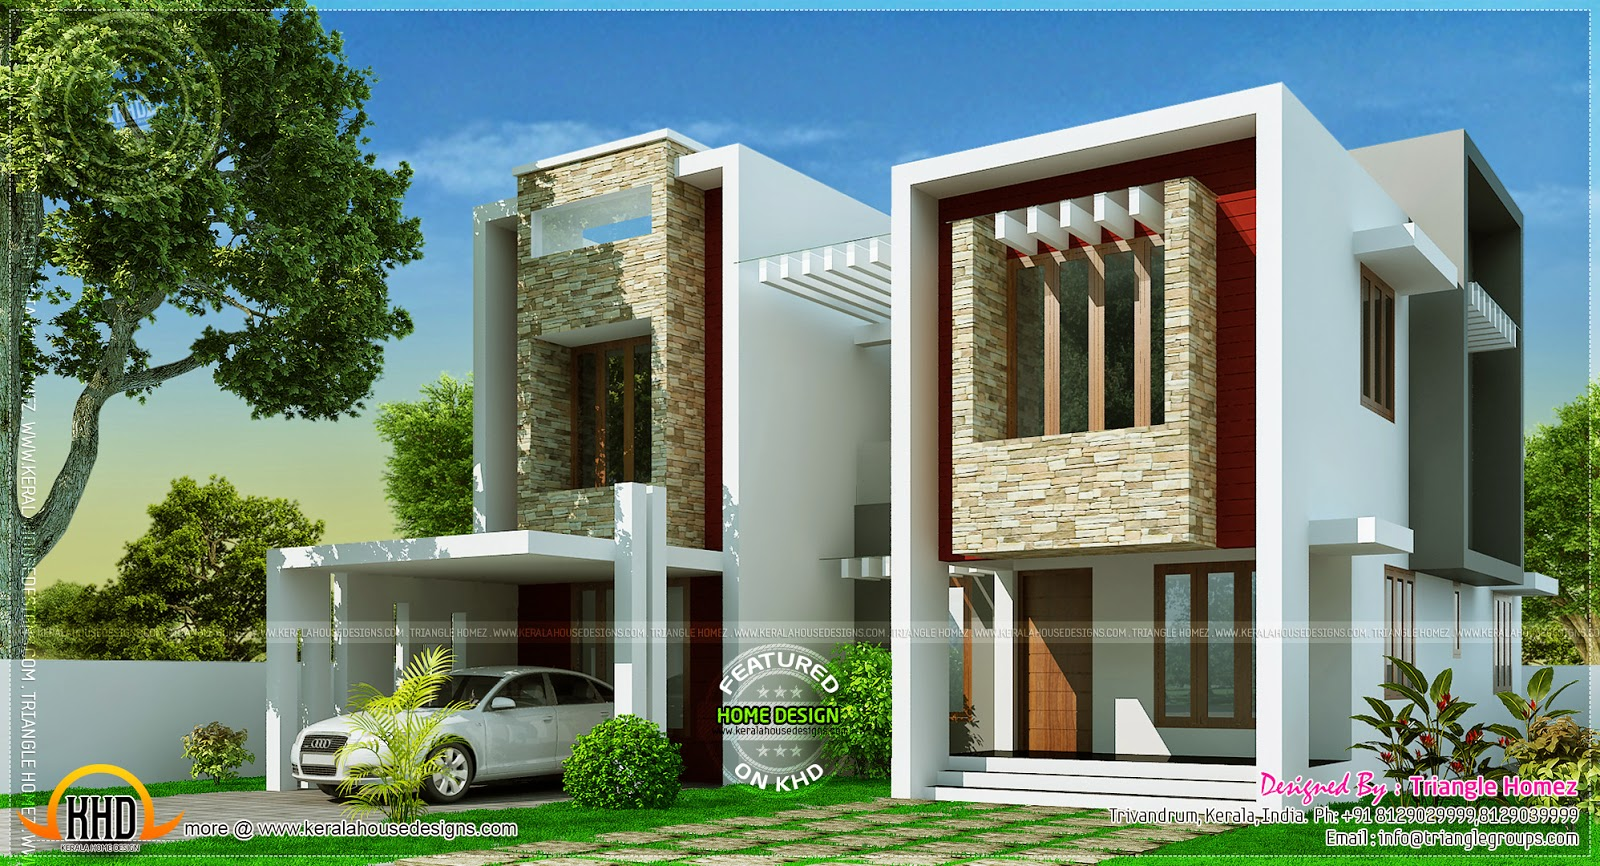 Modern villa design in 2275 square feet kerala home design and floor plans - Modern villa designs ...